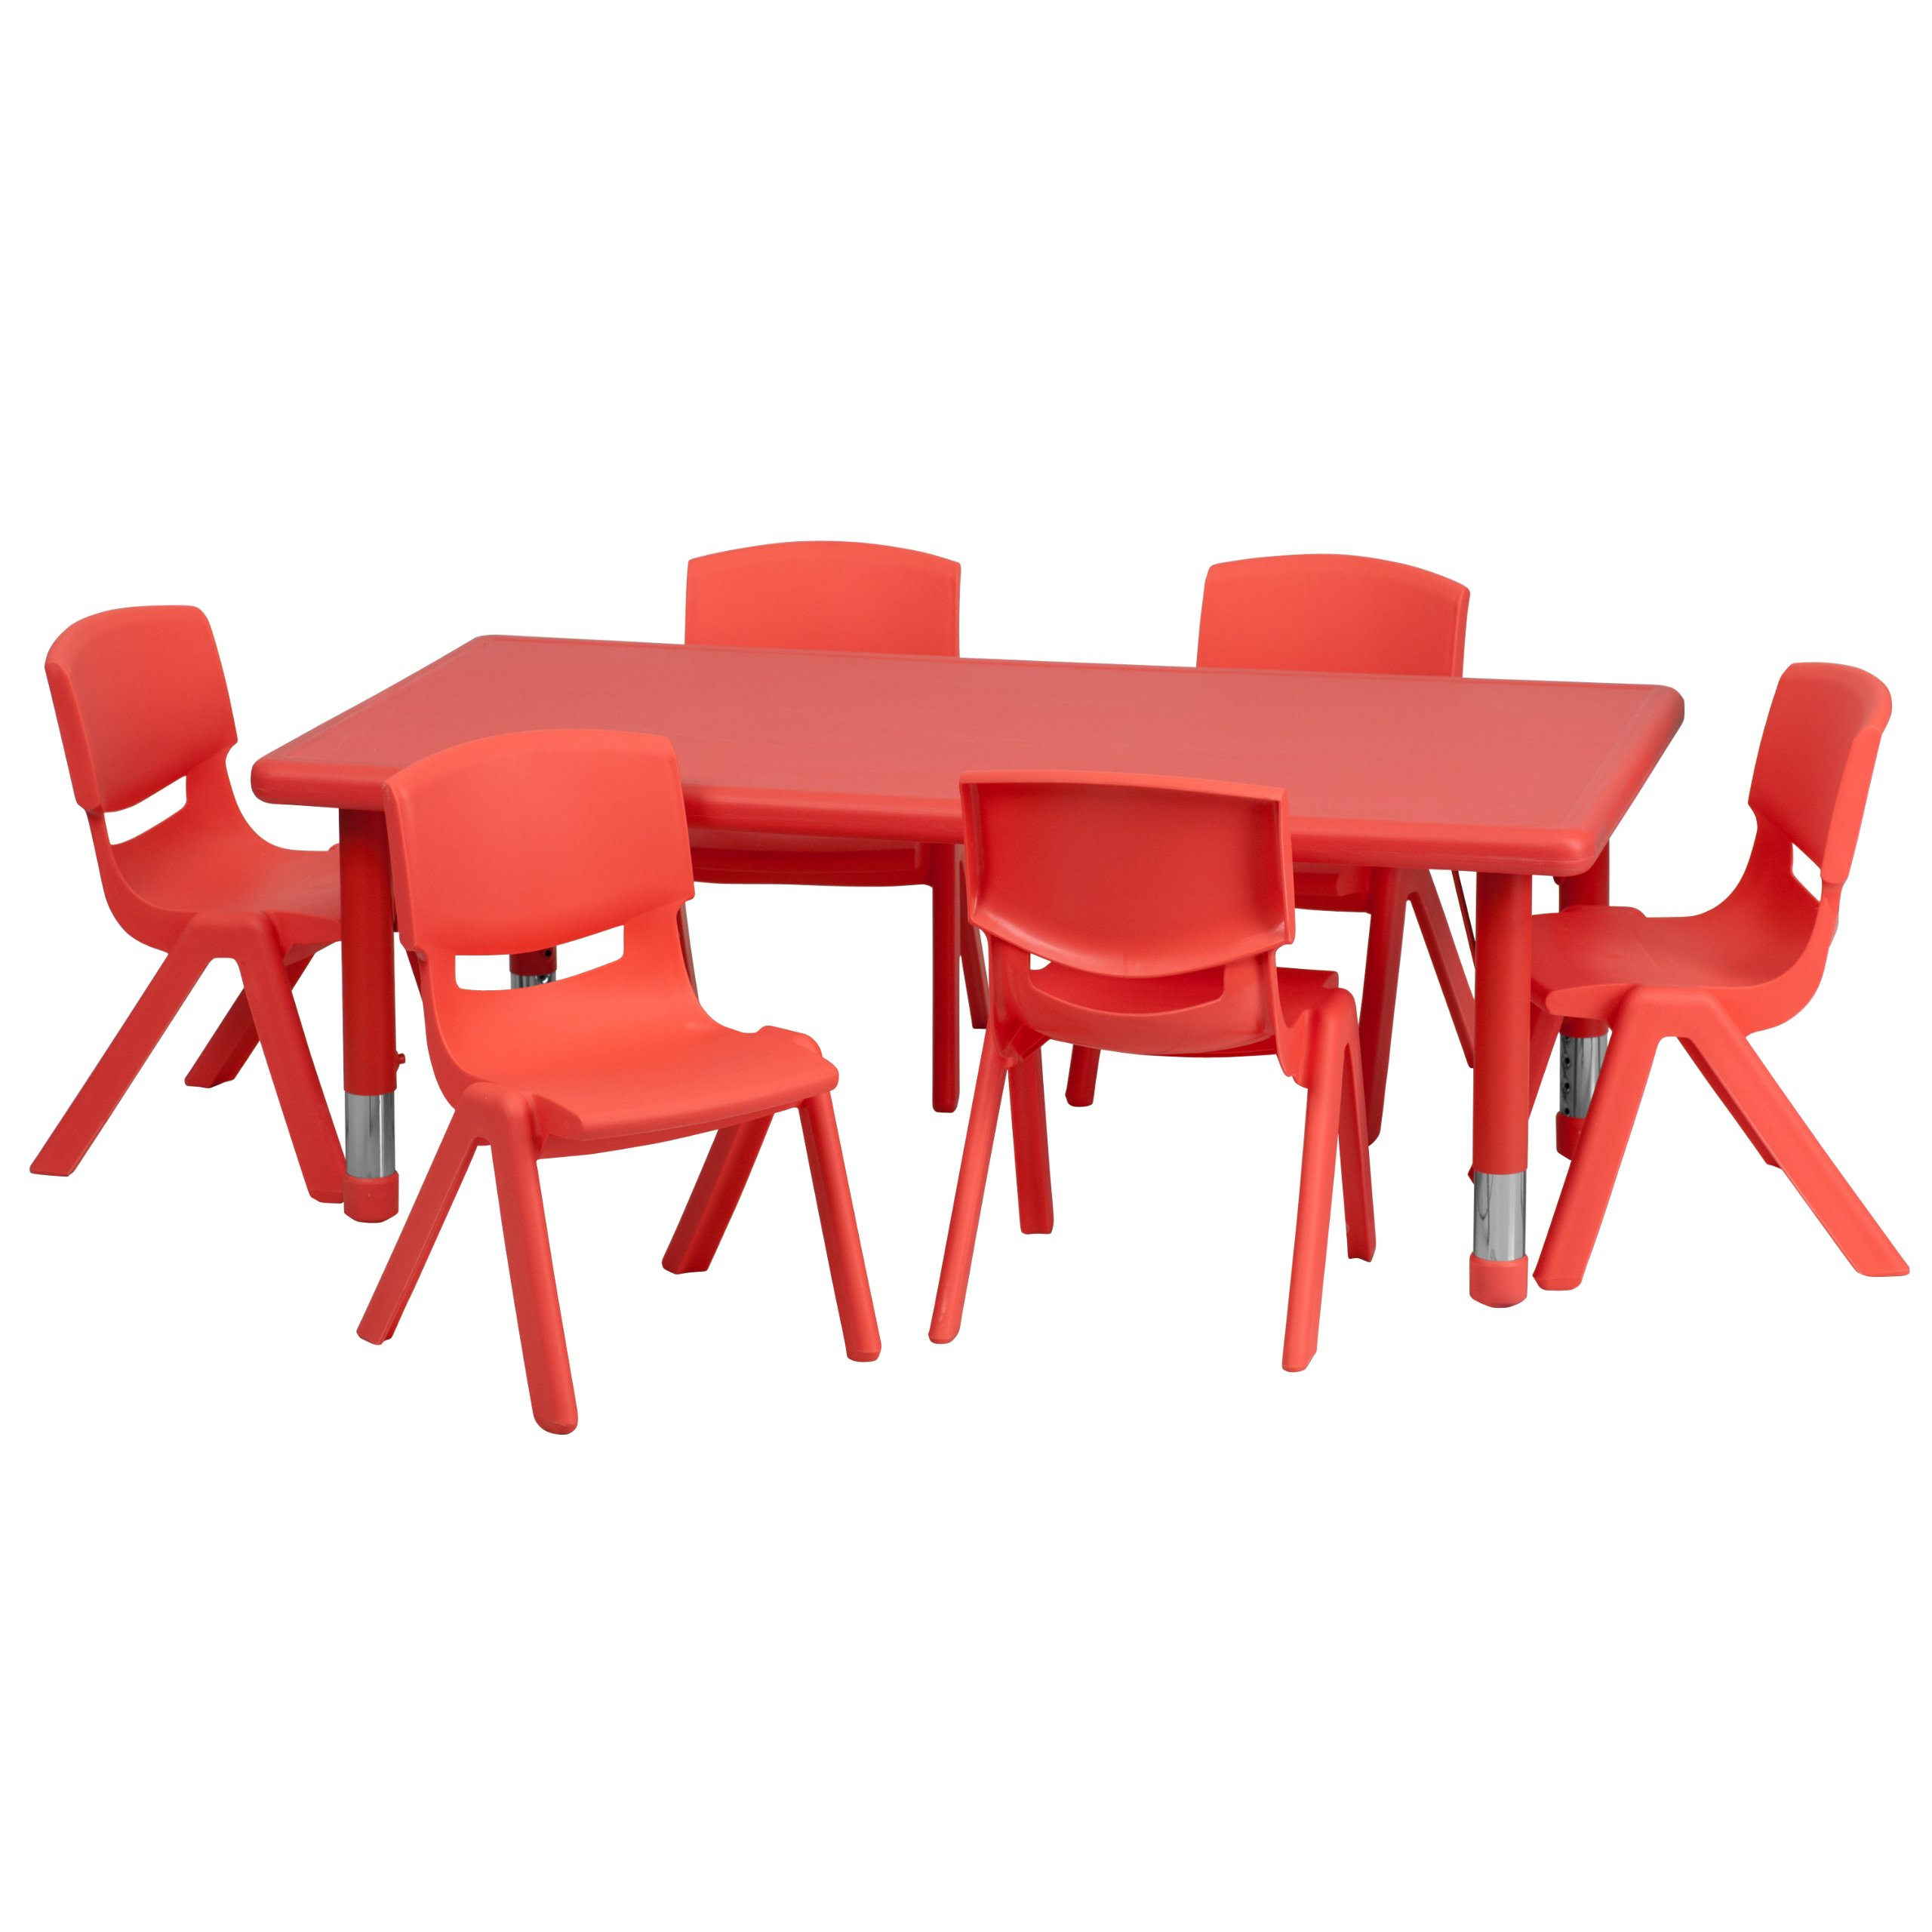 Flash Furniture 24''W x 48''L Rectangular Red Plastic Height Adjustable Activity Table Set with 6 Chairs by Flash Furniture